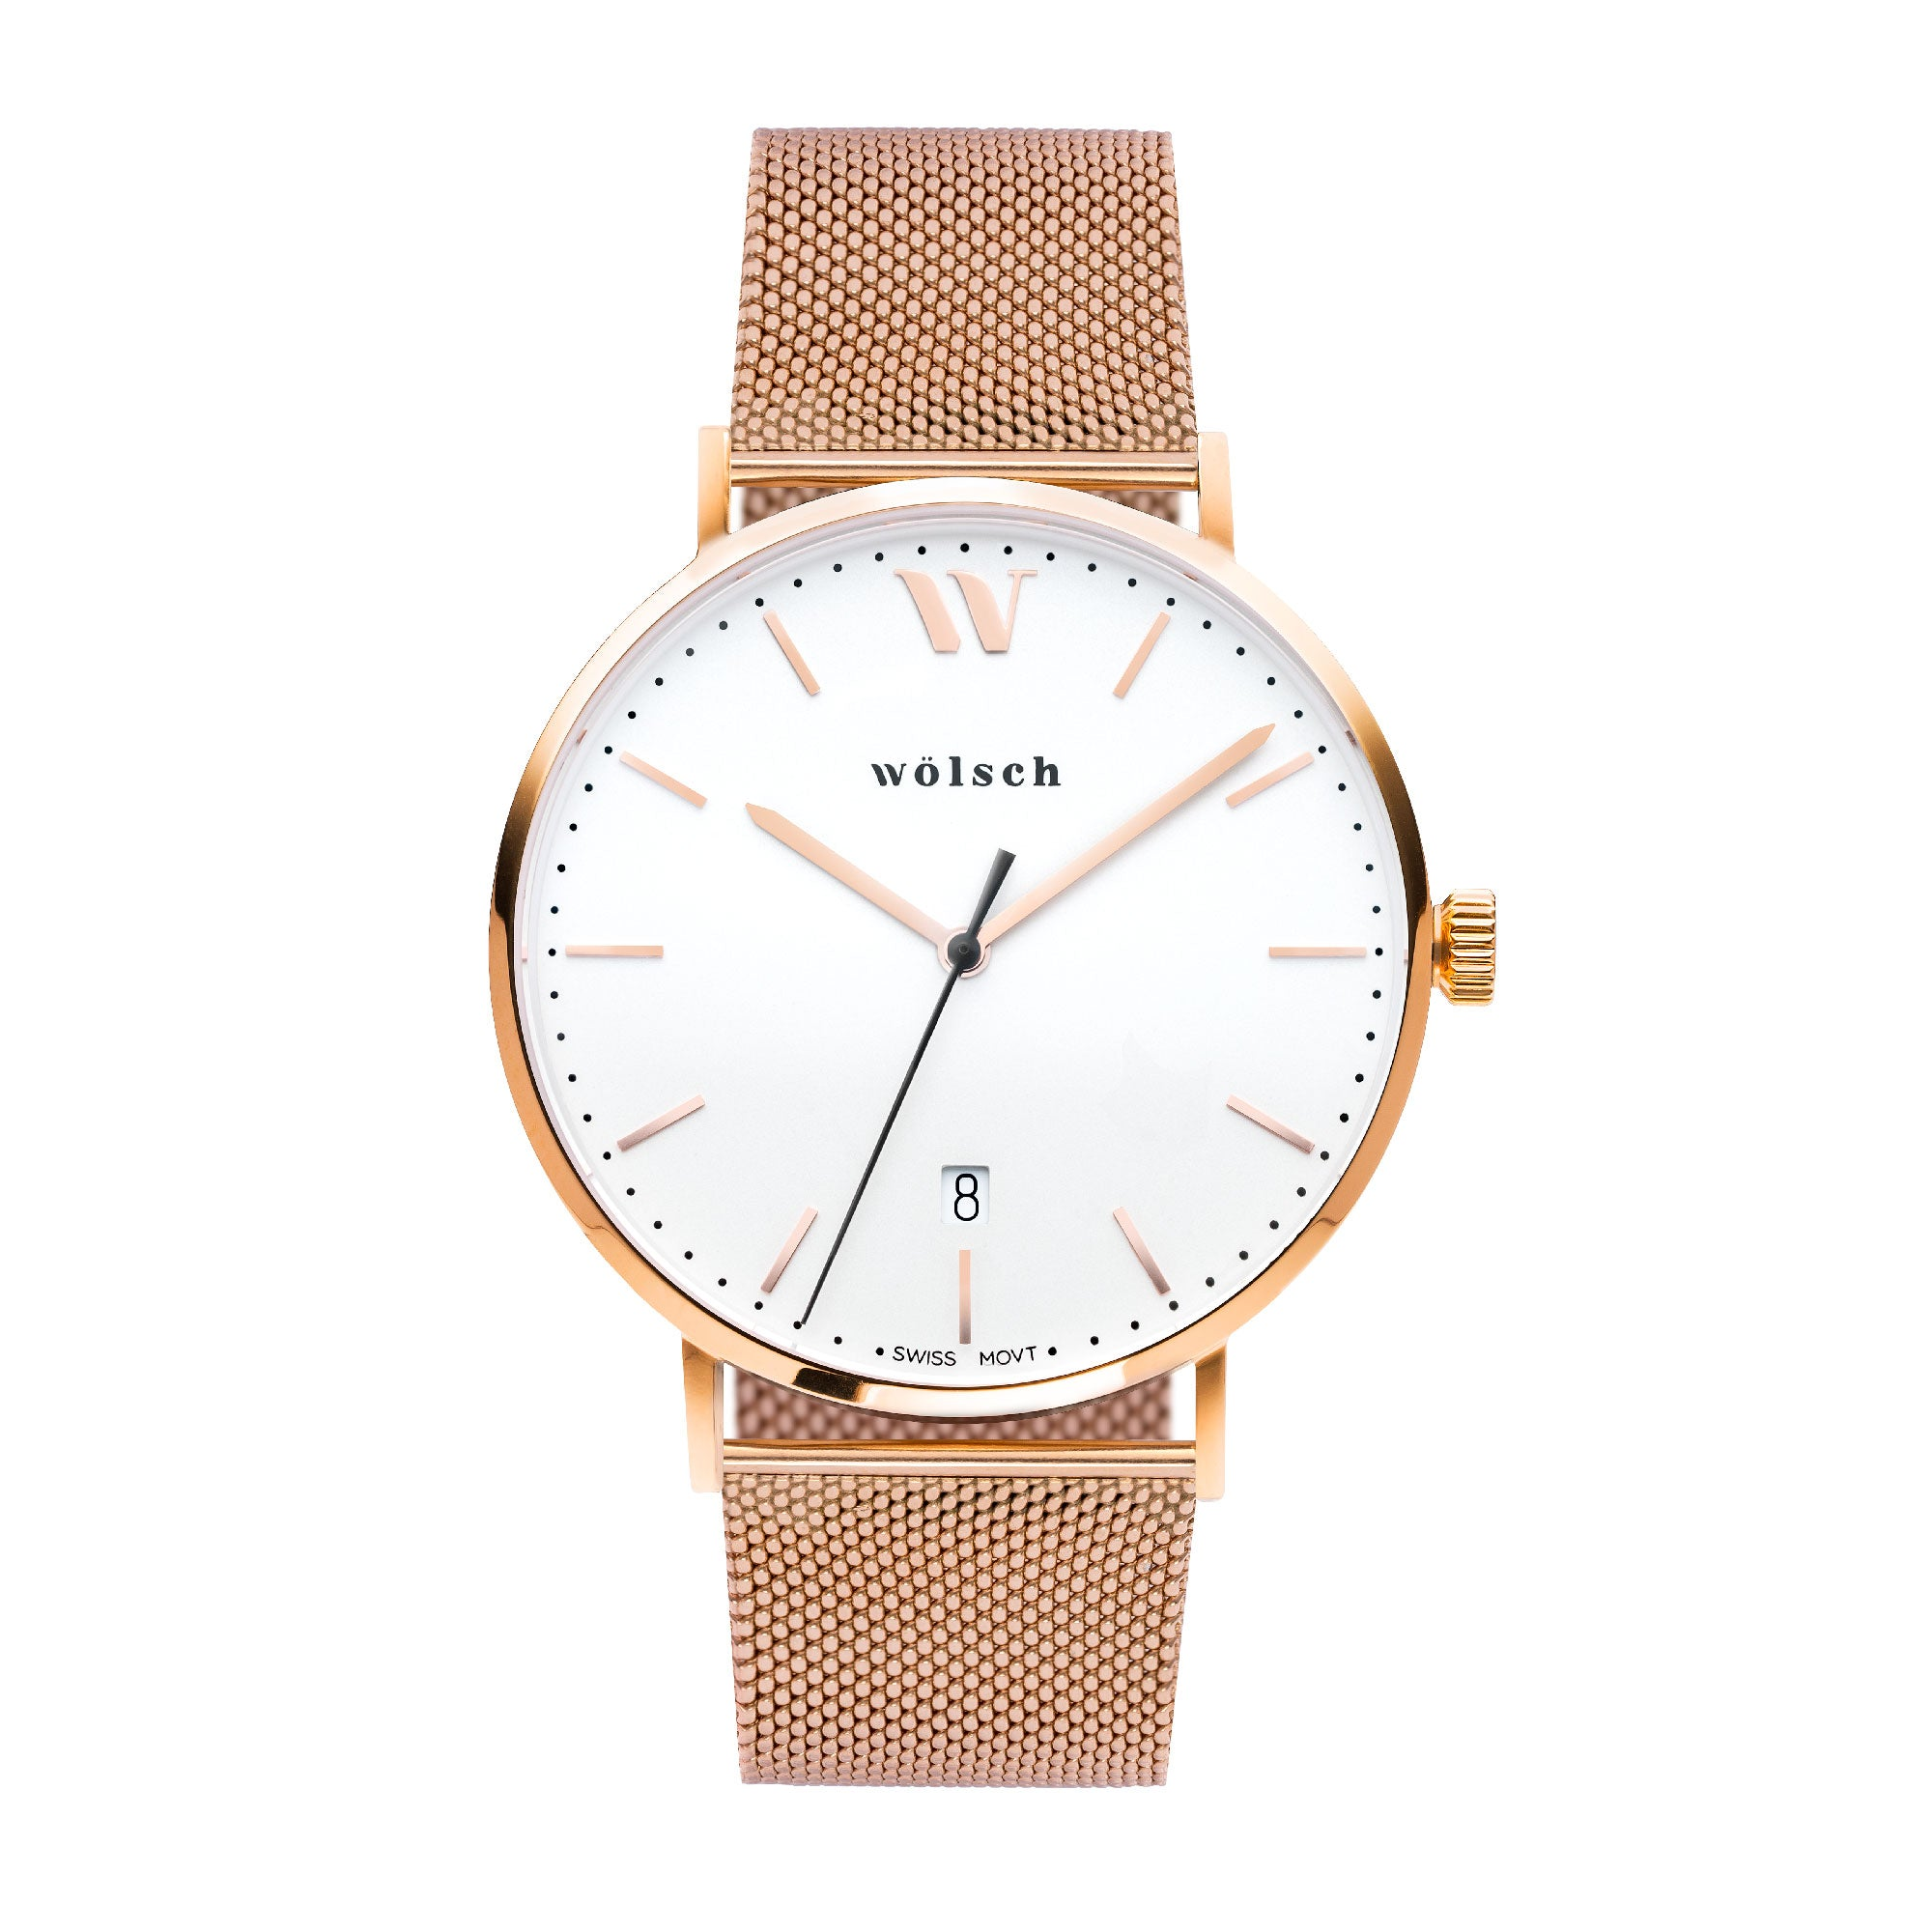 conrad charles watches white leather watch unisex products rose gold